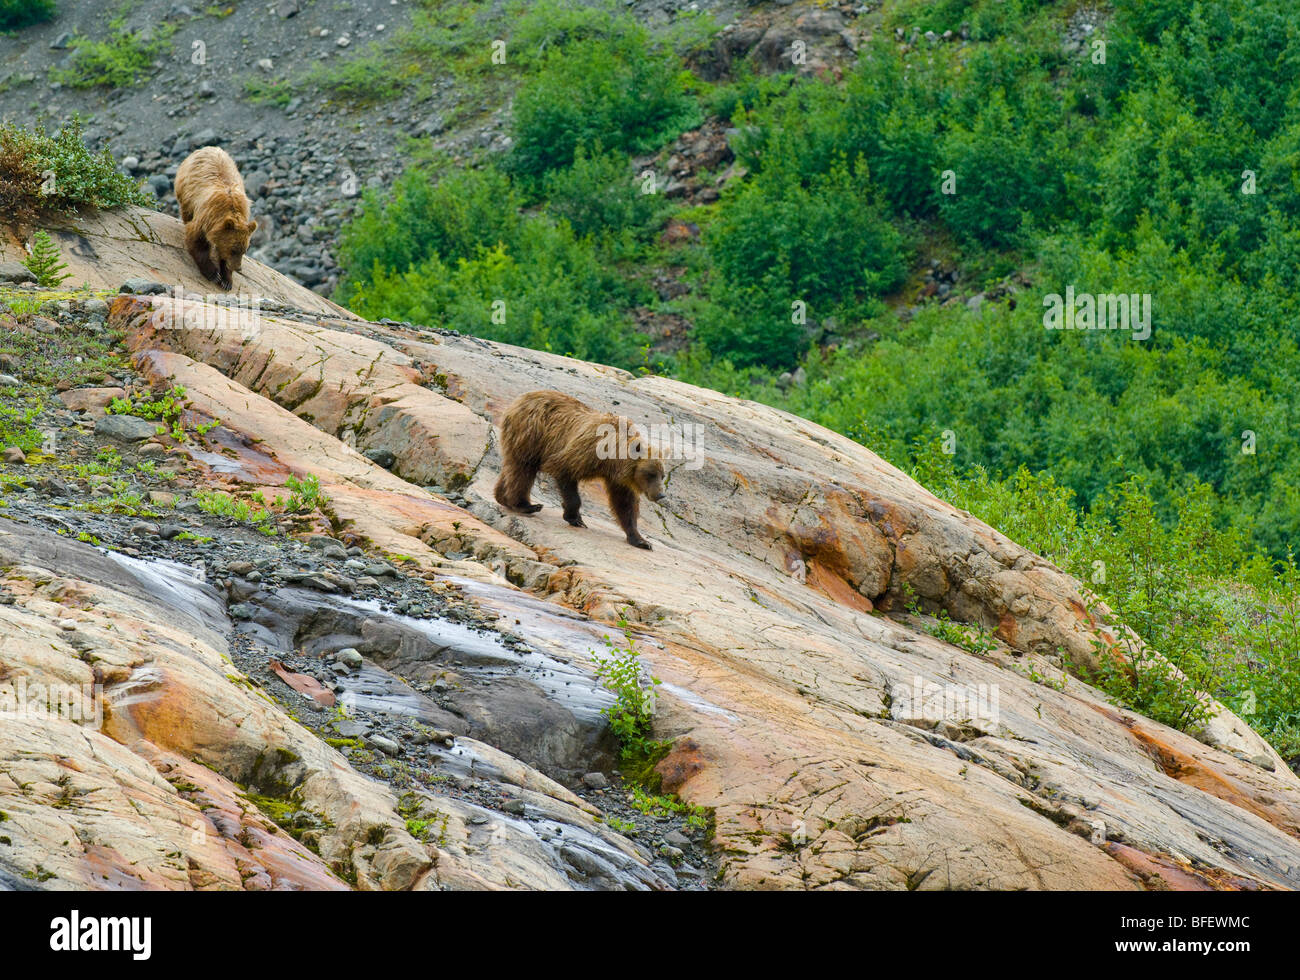 Mother and young female Grizzly bears (Ursus arctos horribilis) descending a rock formation called a Roche Moutonnee - Stock Image